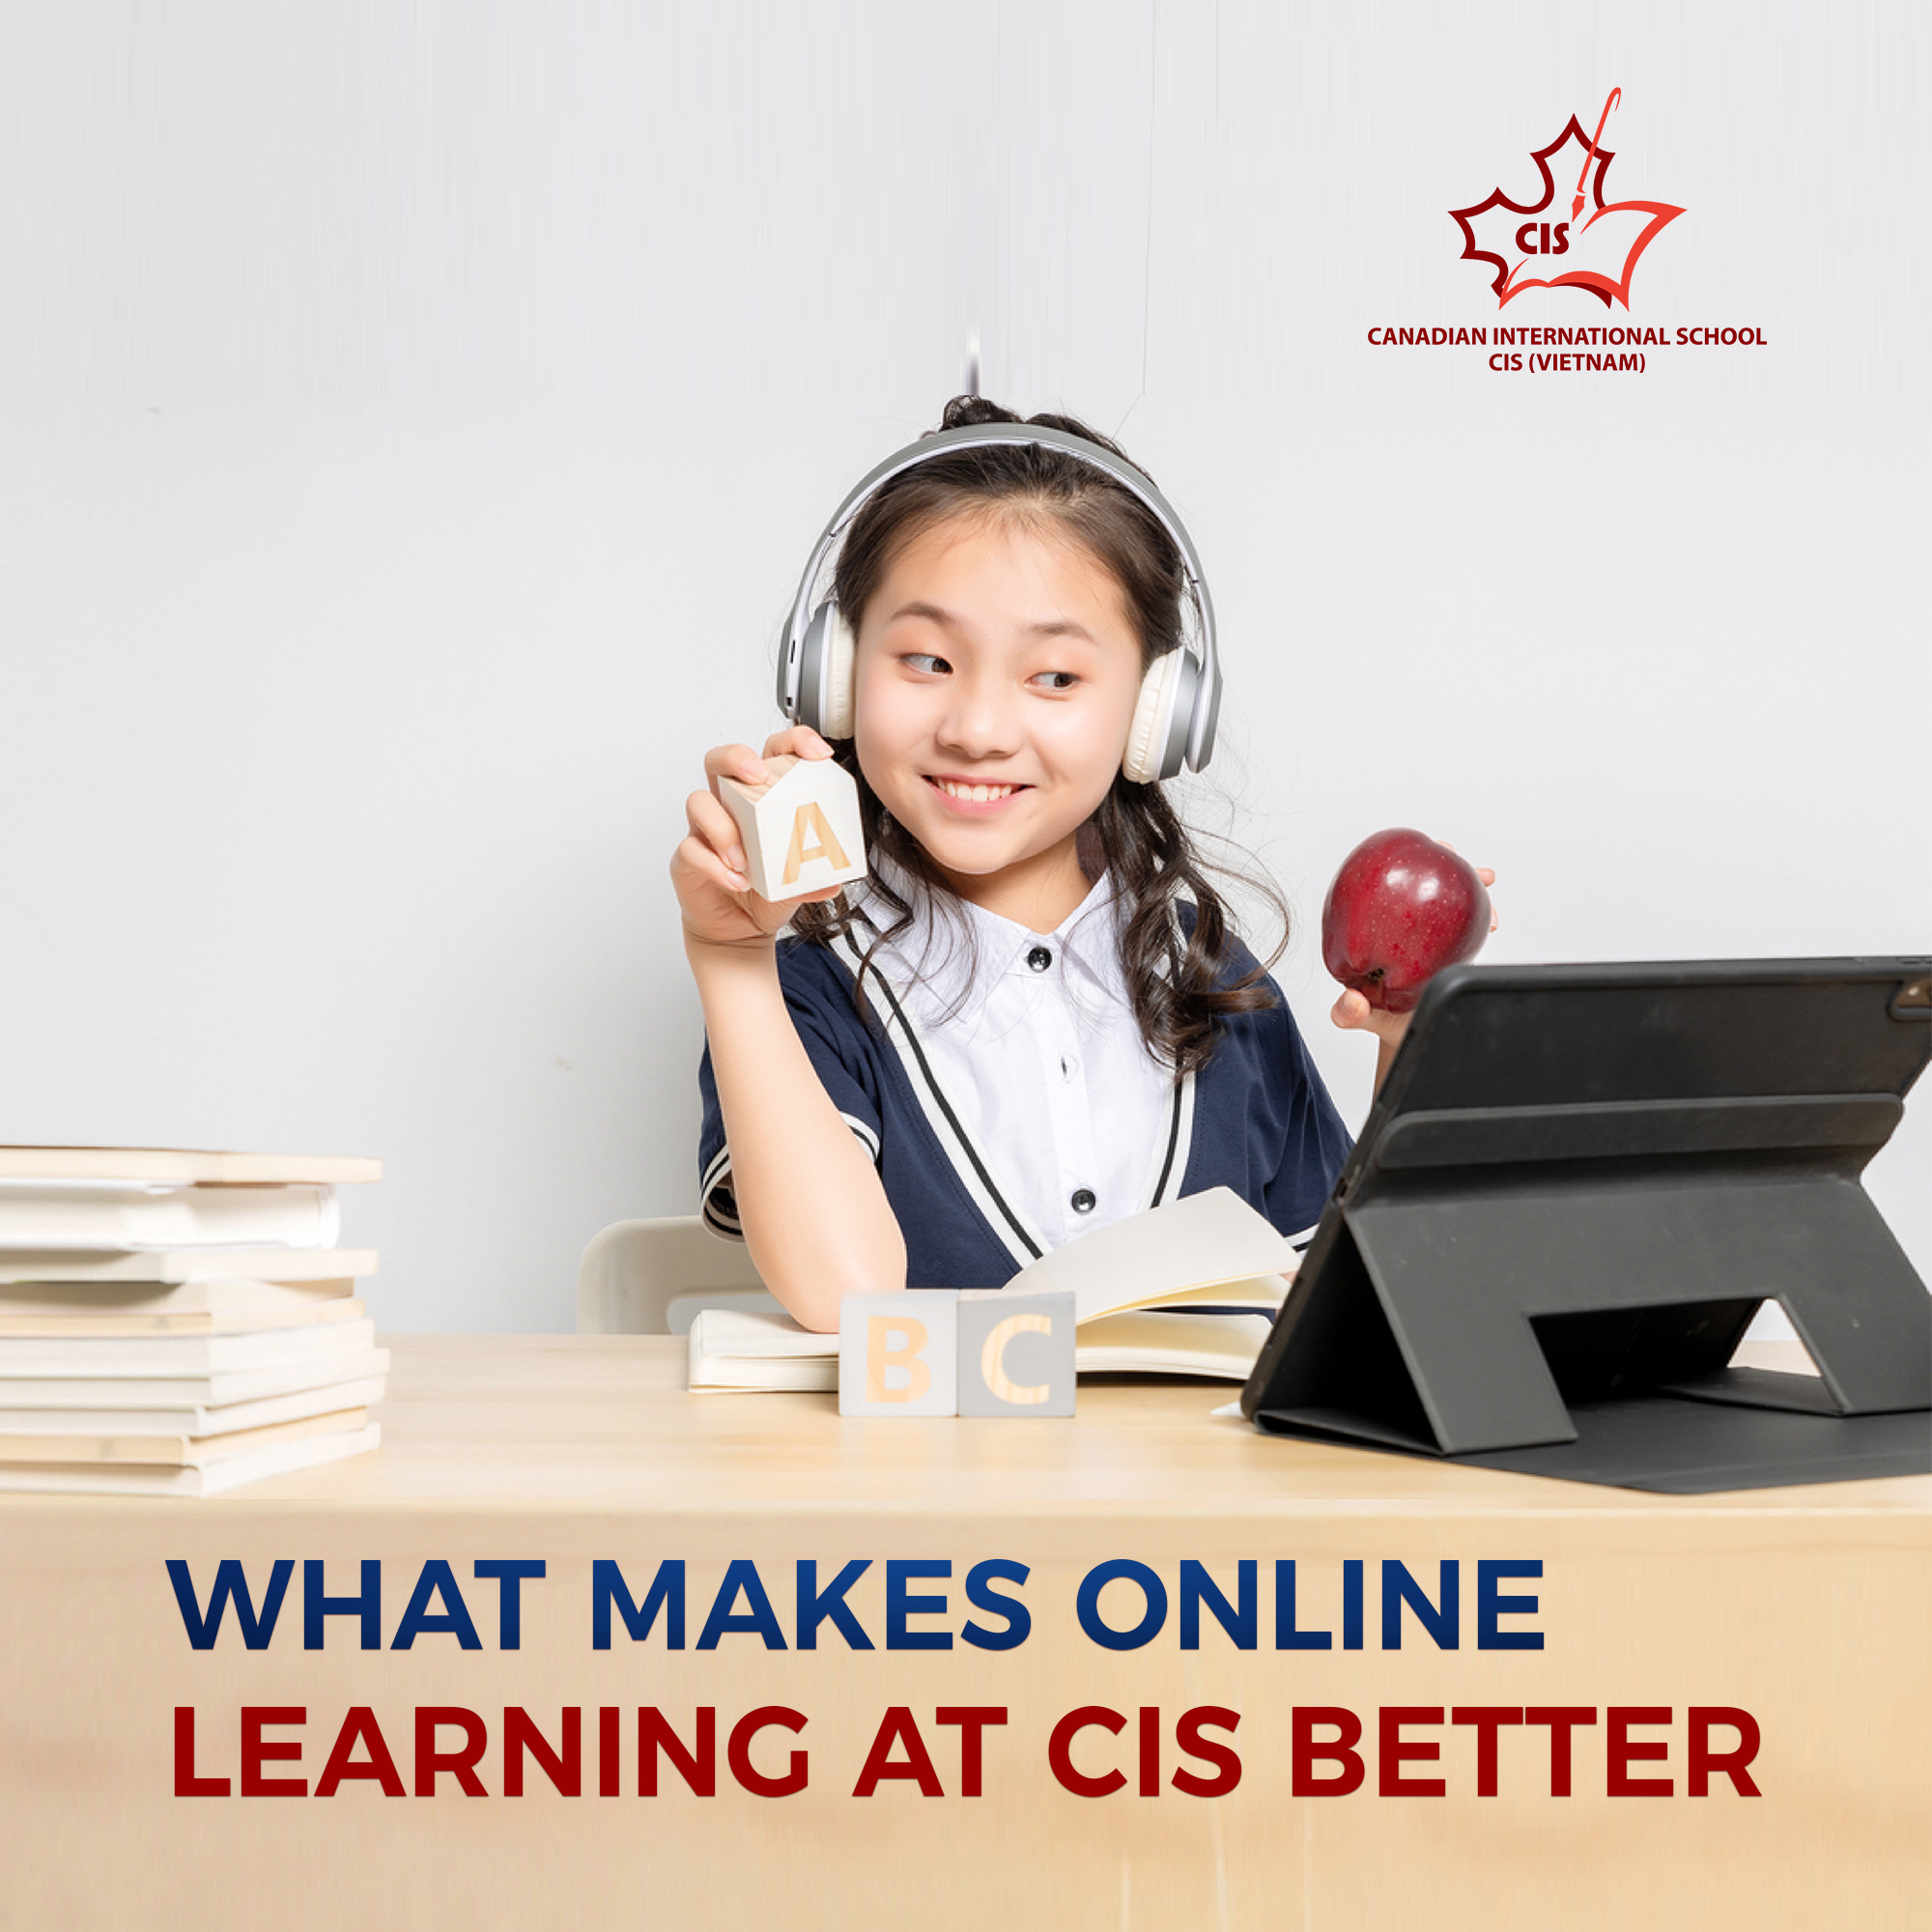 WHY SPECIFICALLY CIS IS A BETTER CHOICE FOR ONLINE LEARNING?